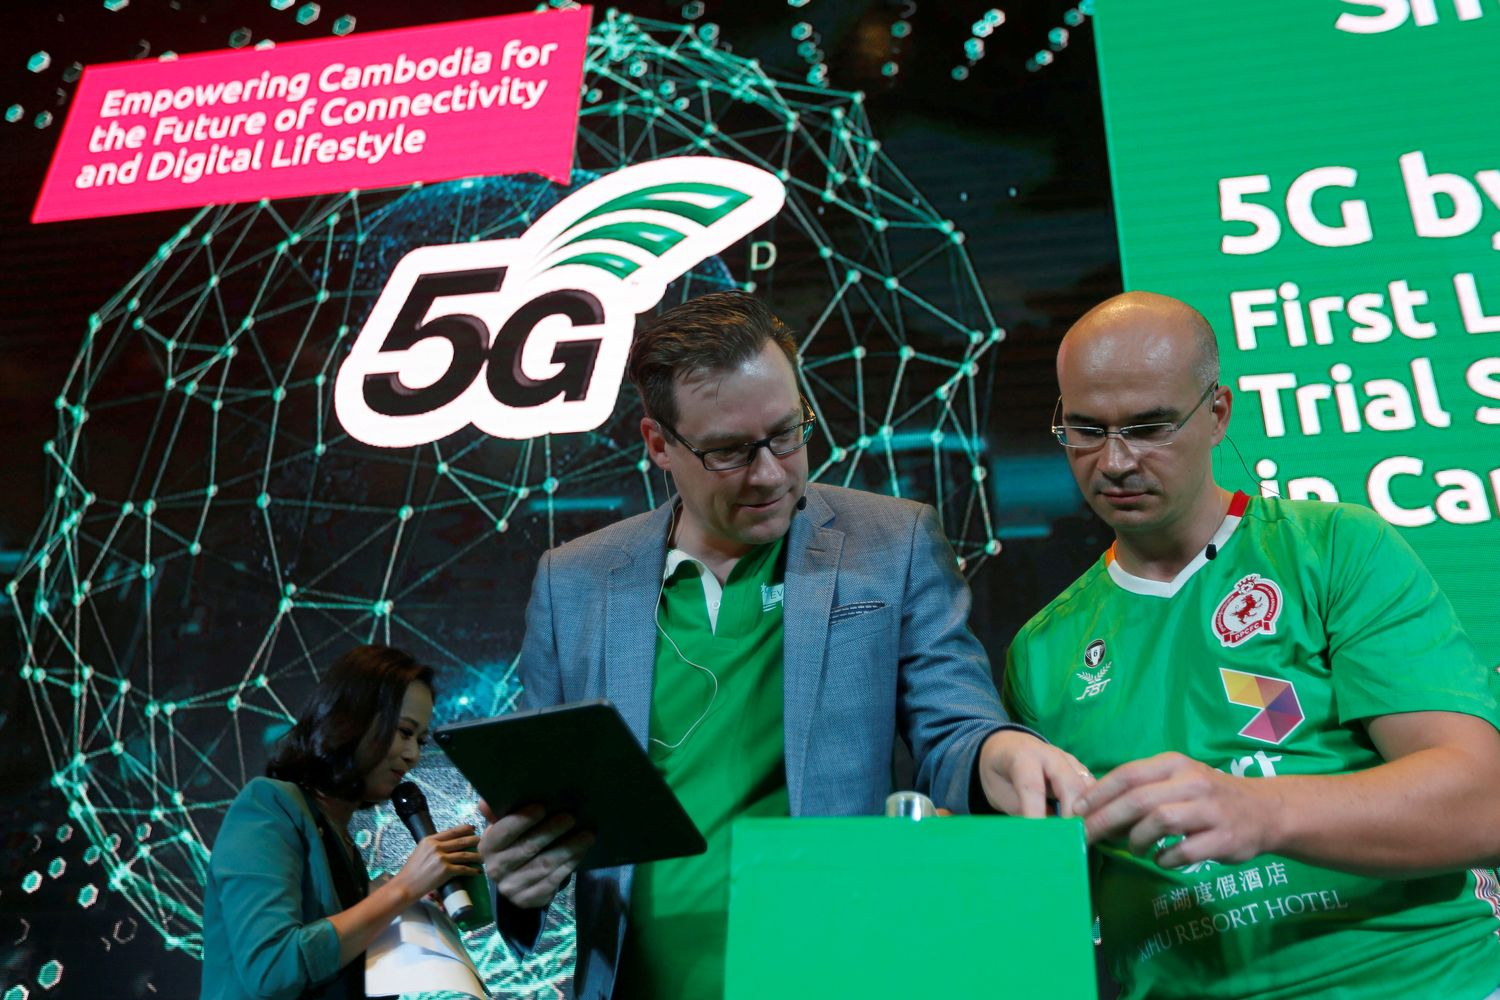 Thomas Hundt, CEO of Smart Axiata, gestures during a 5G launching ceremony at the Smart Axiata Telecommunications company in Phnom Penh on Monday. (Reuters photo)